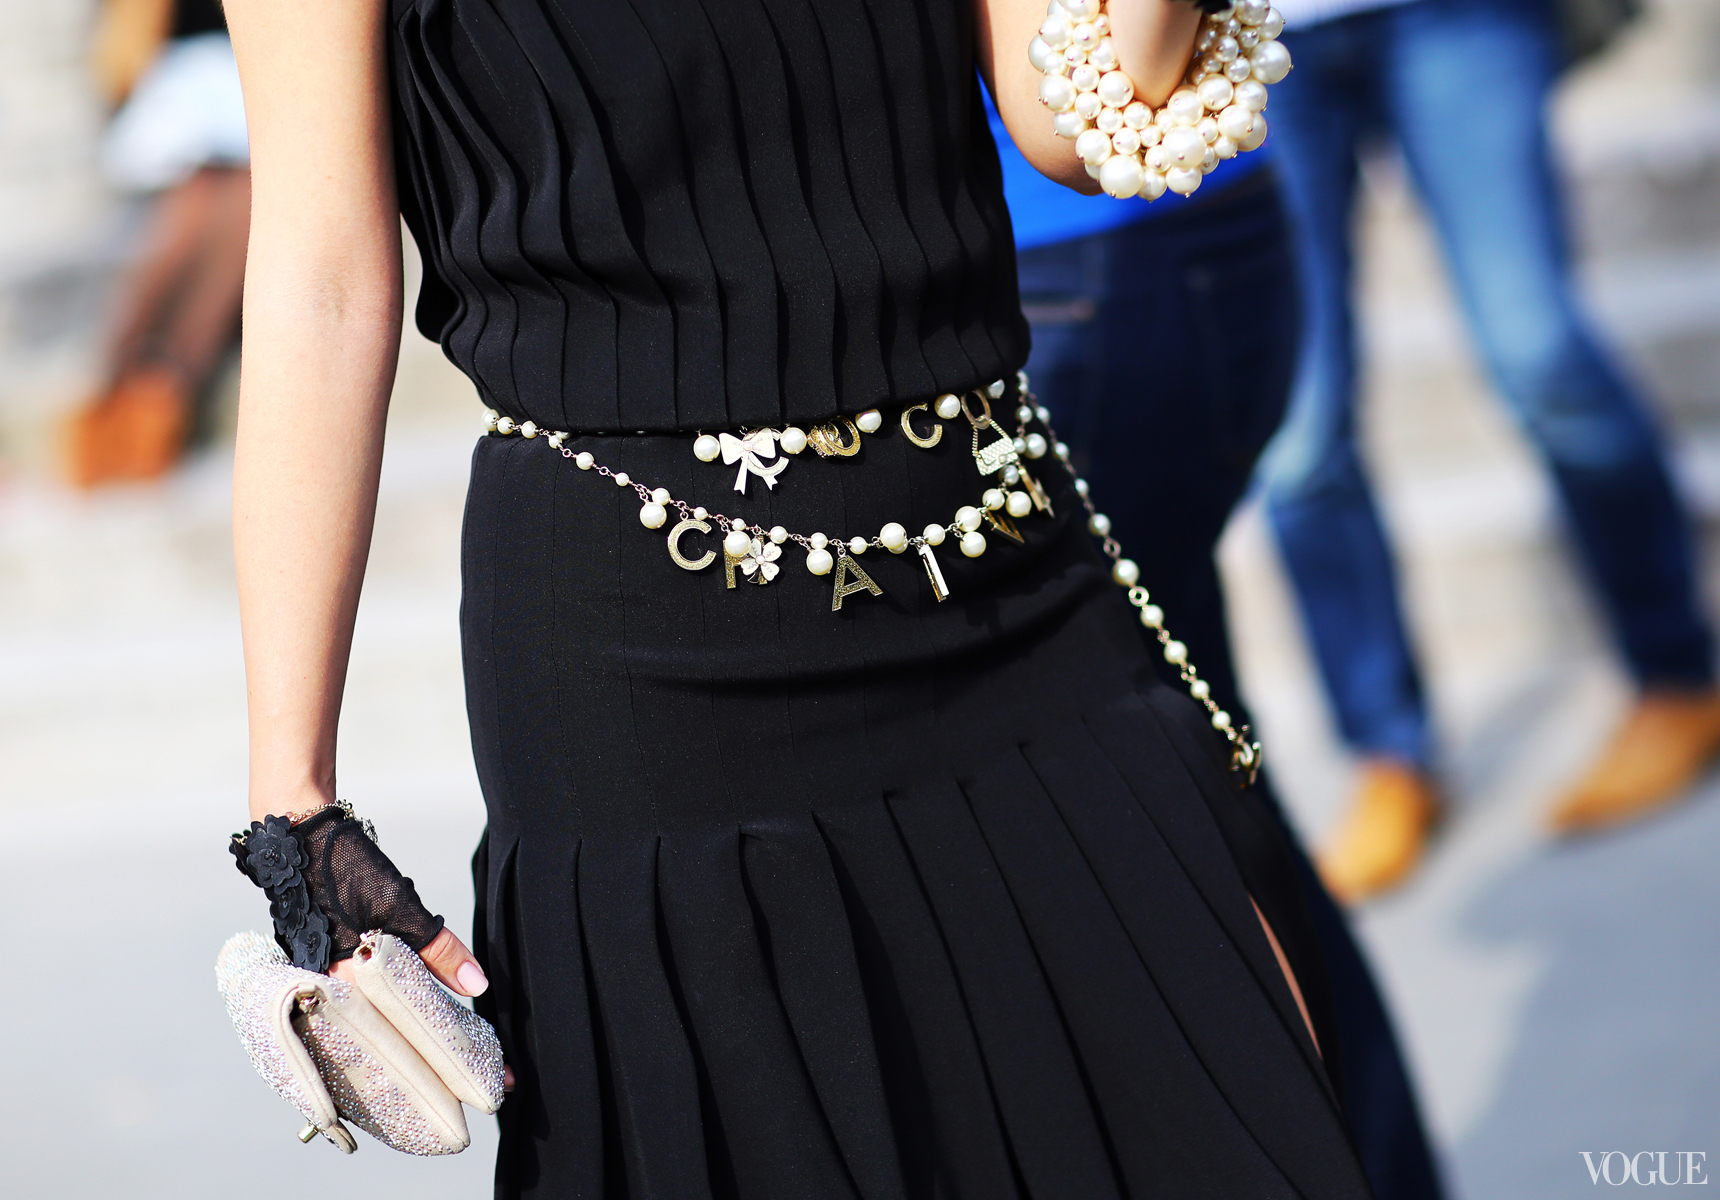 Couture-Street-style-coco-chanel-black-belt-fashion